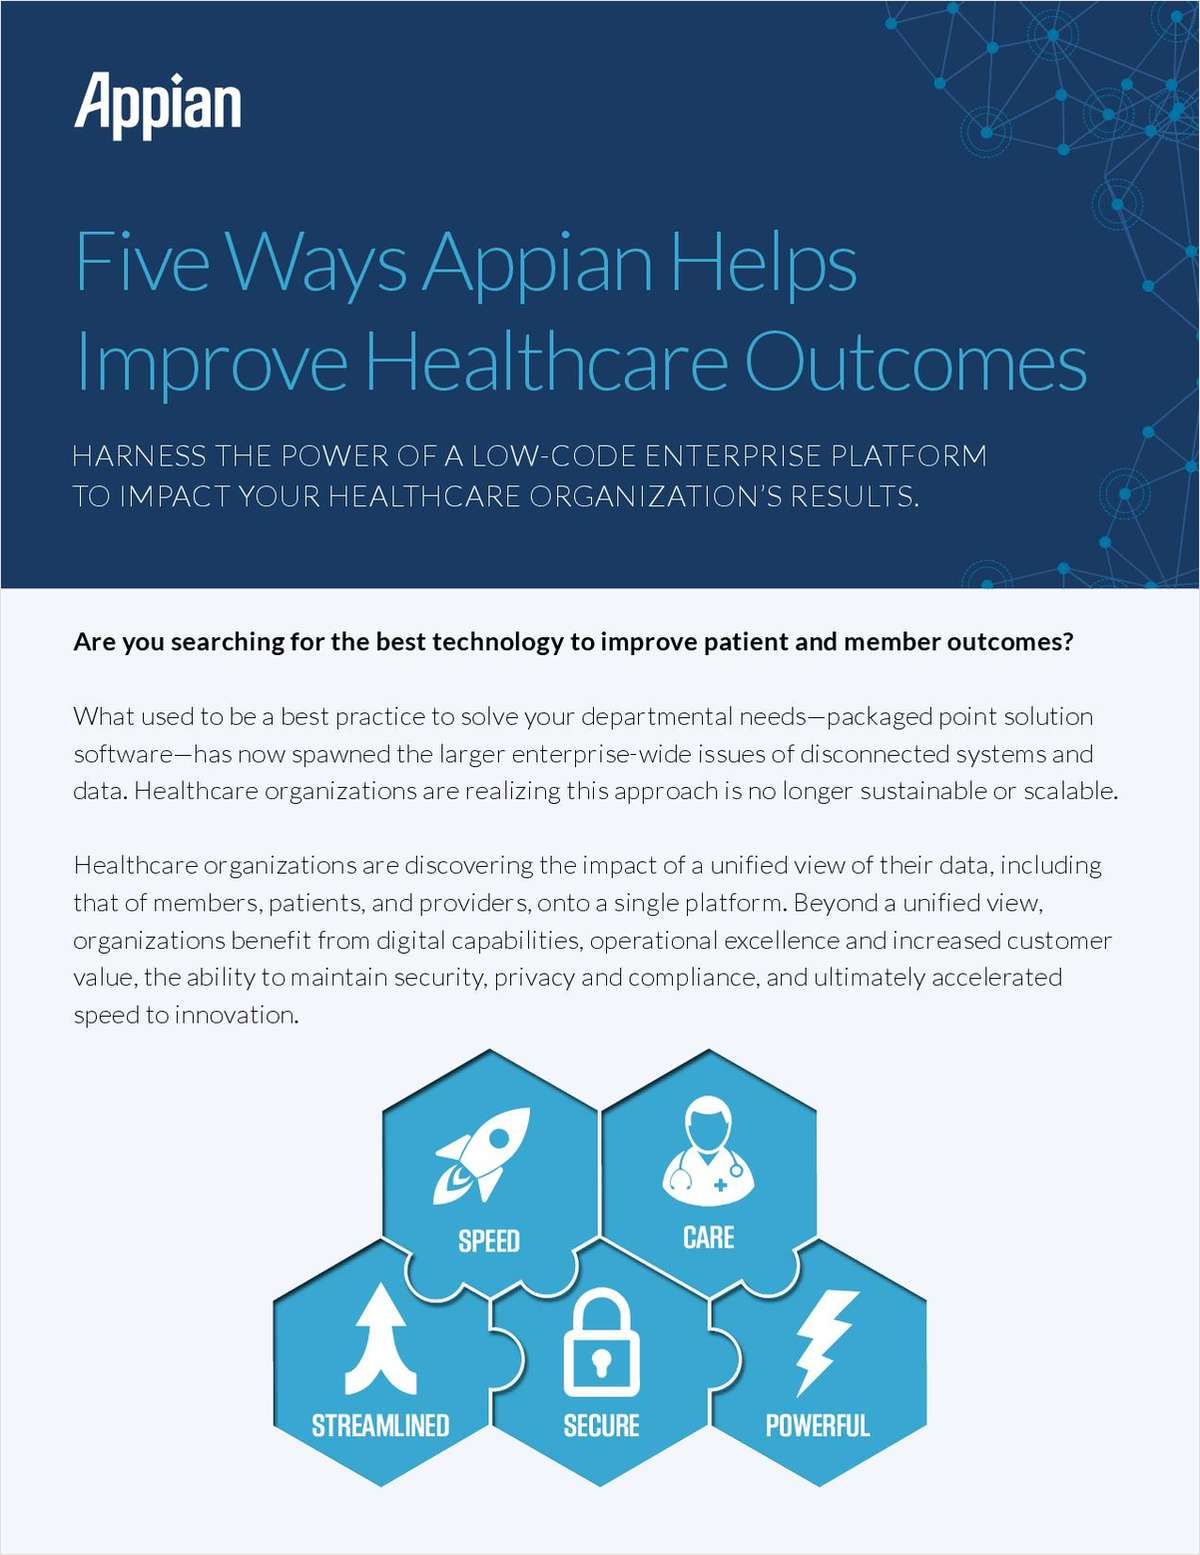 Five Ways Appian Helps Improve Healthcare Outcomes